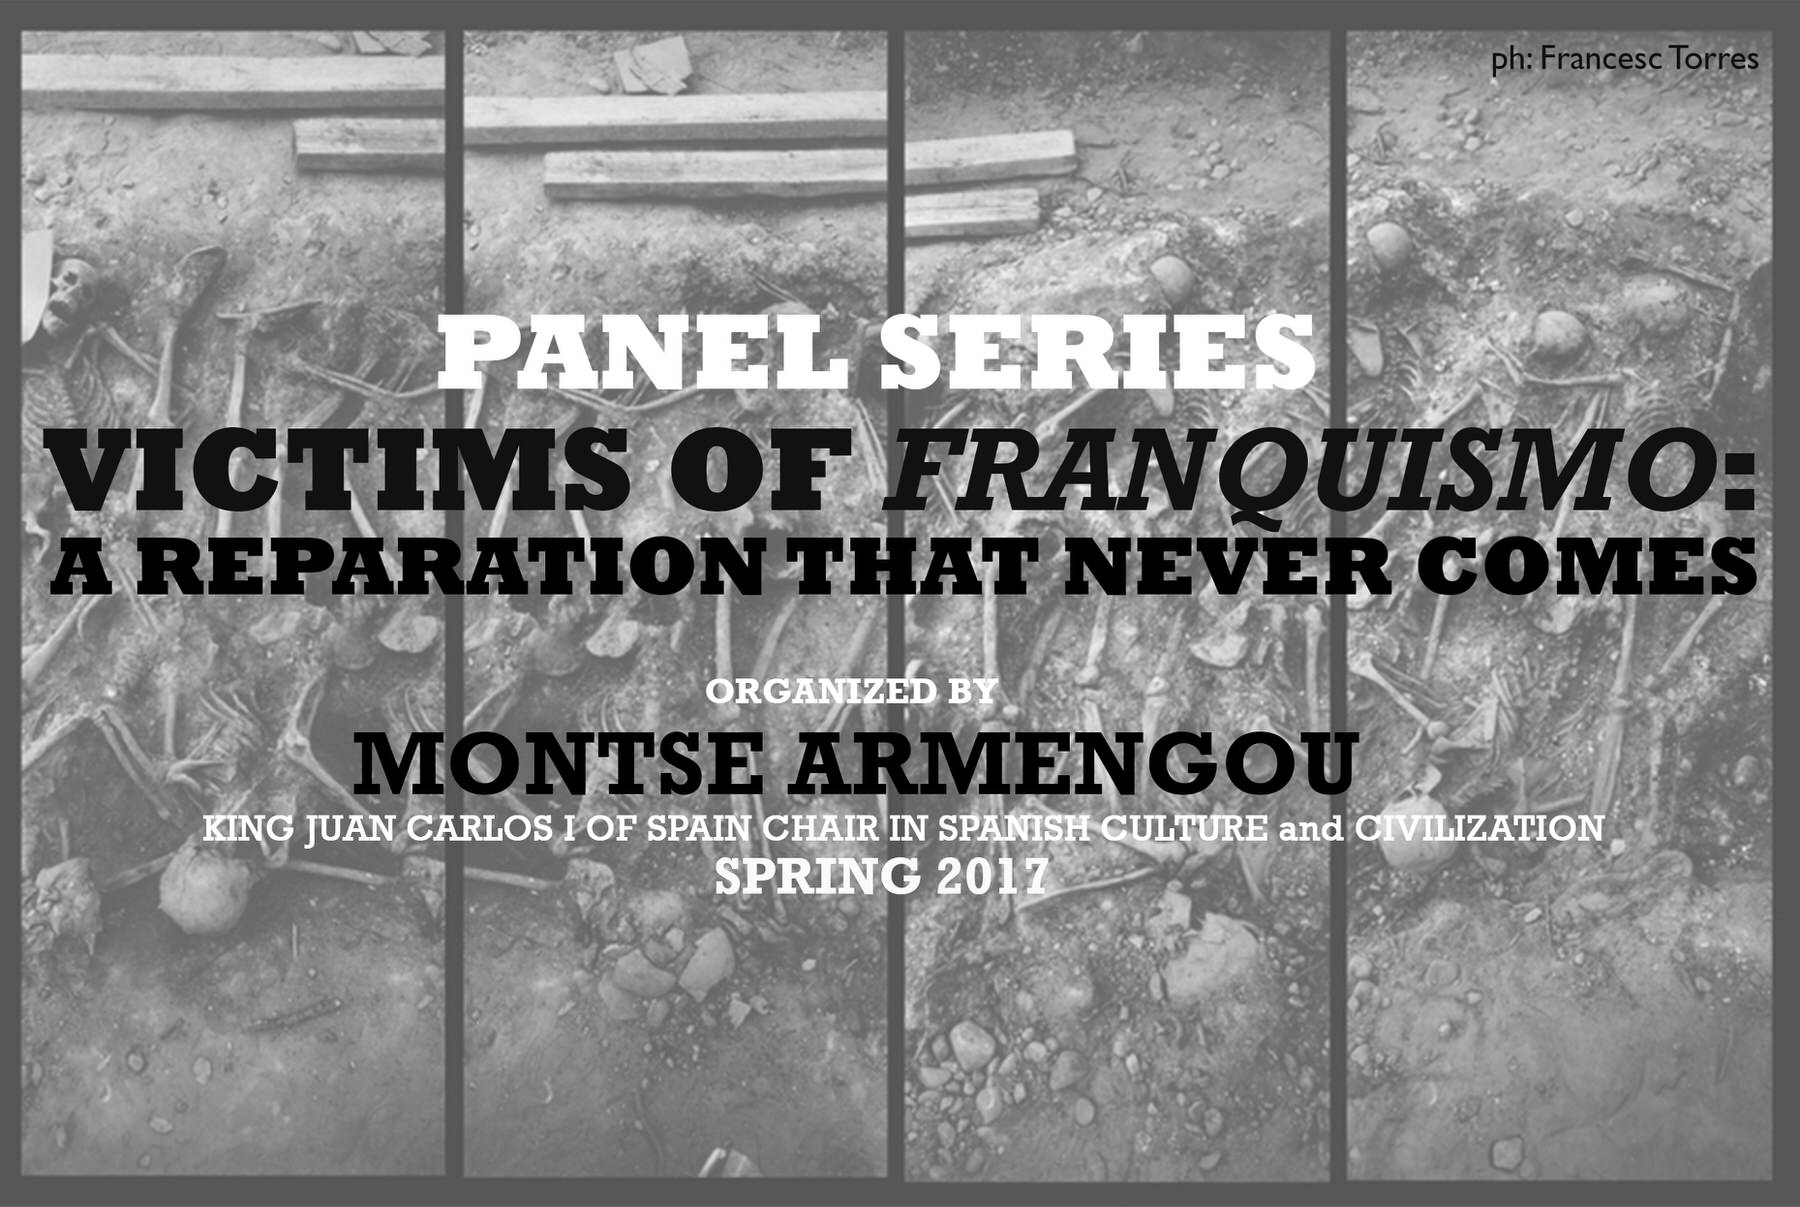 image from Panel Series | Victims Of Franquismo: A Reparation That Never Comes